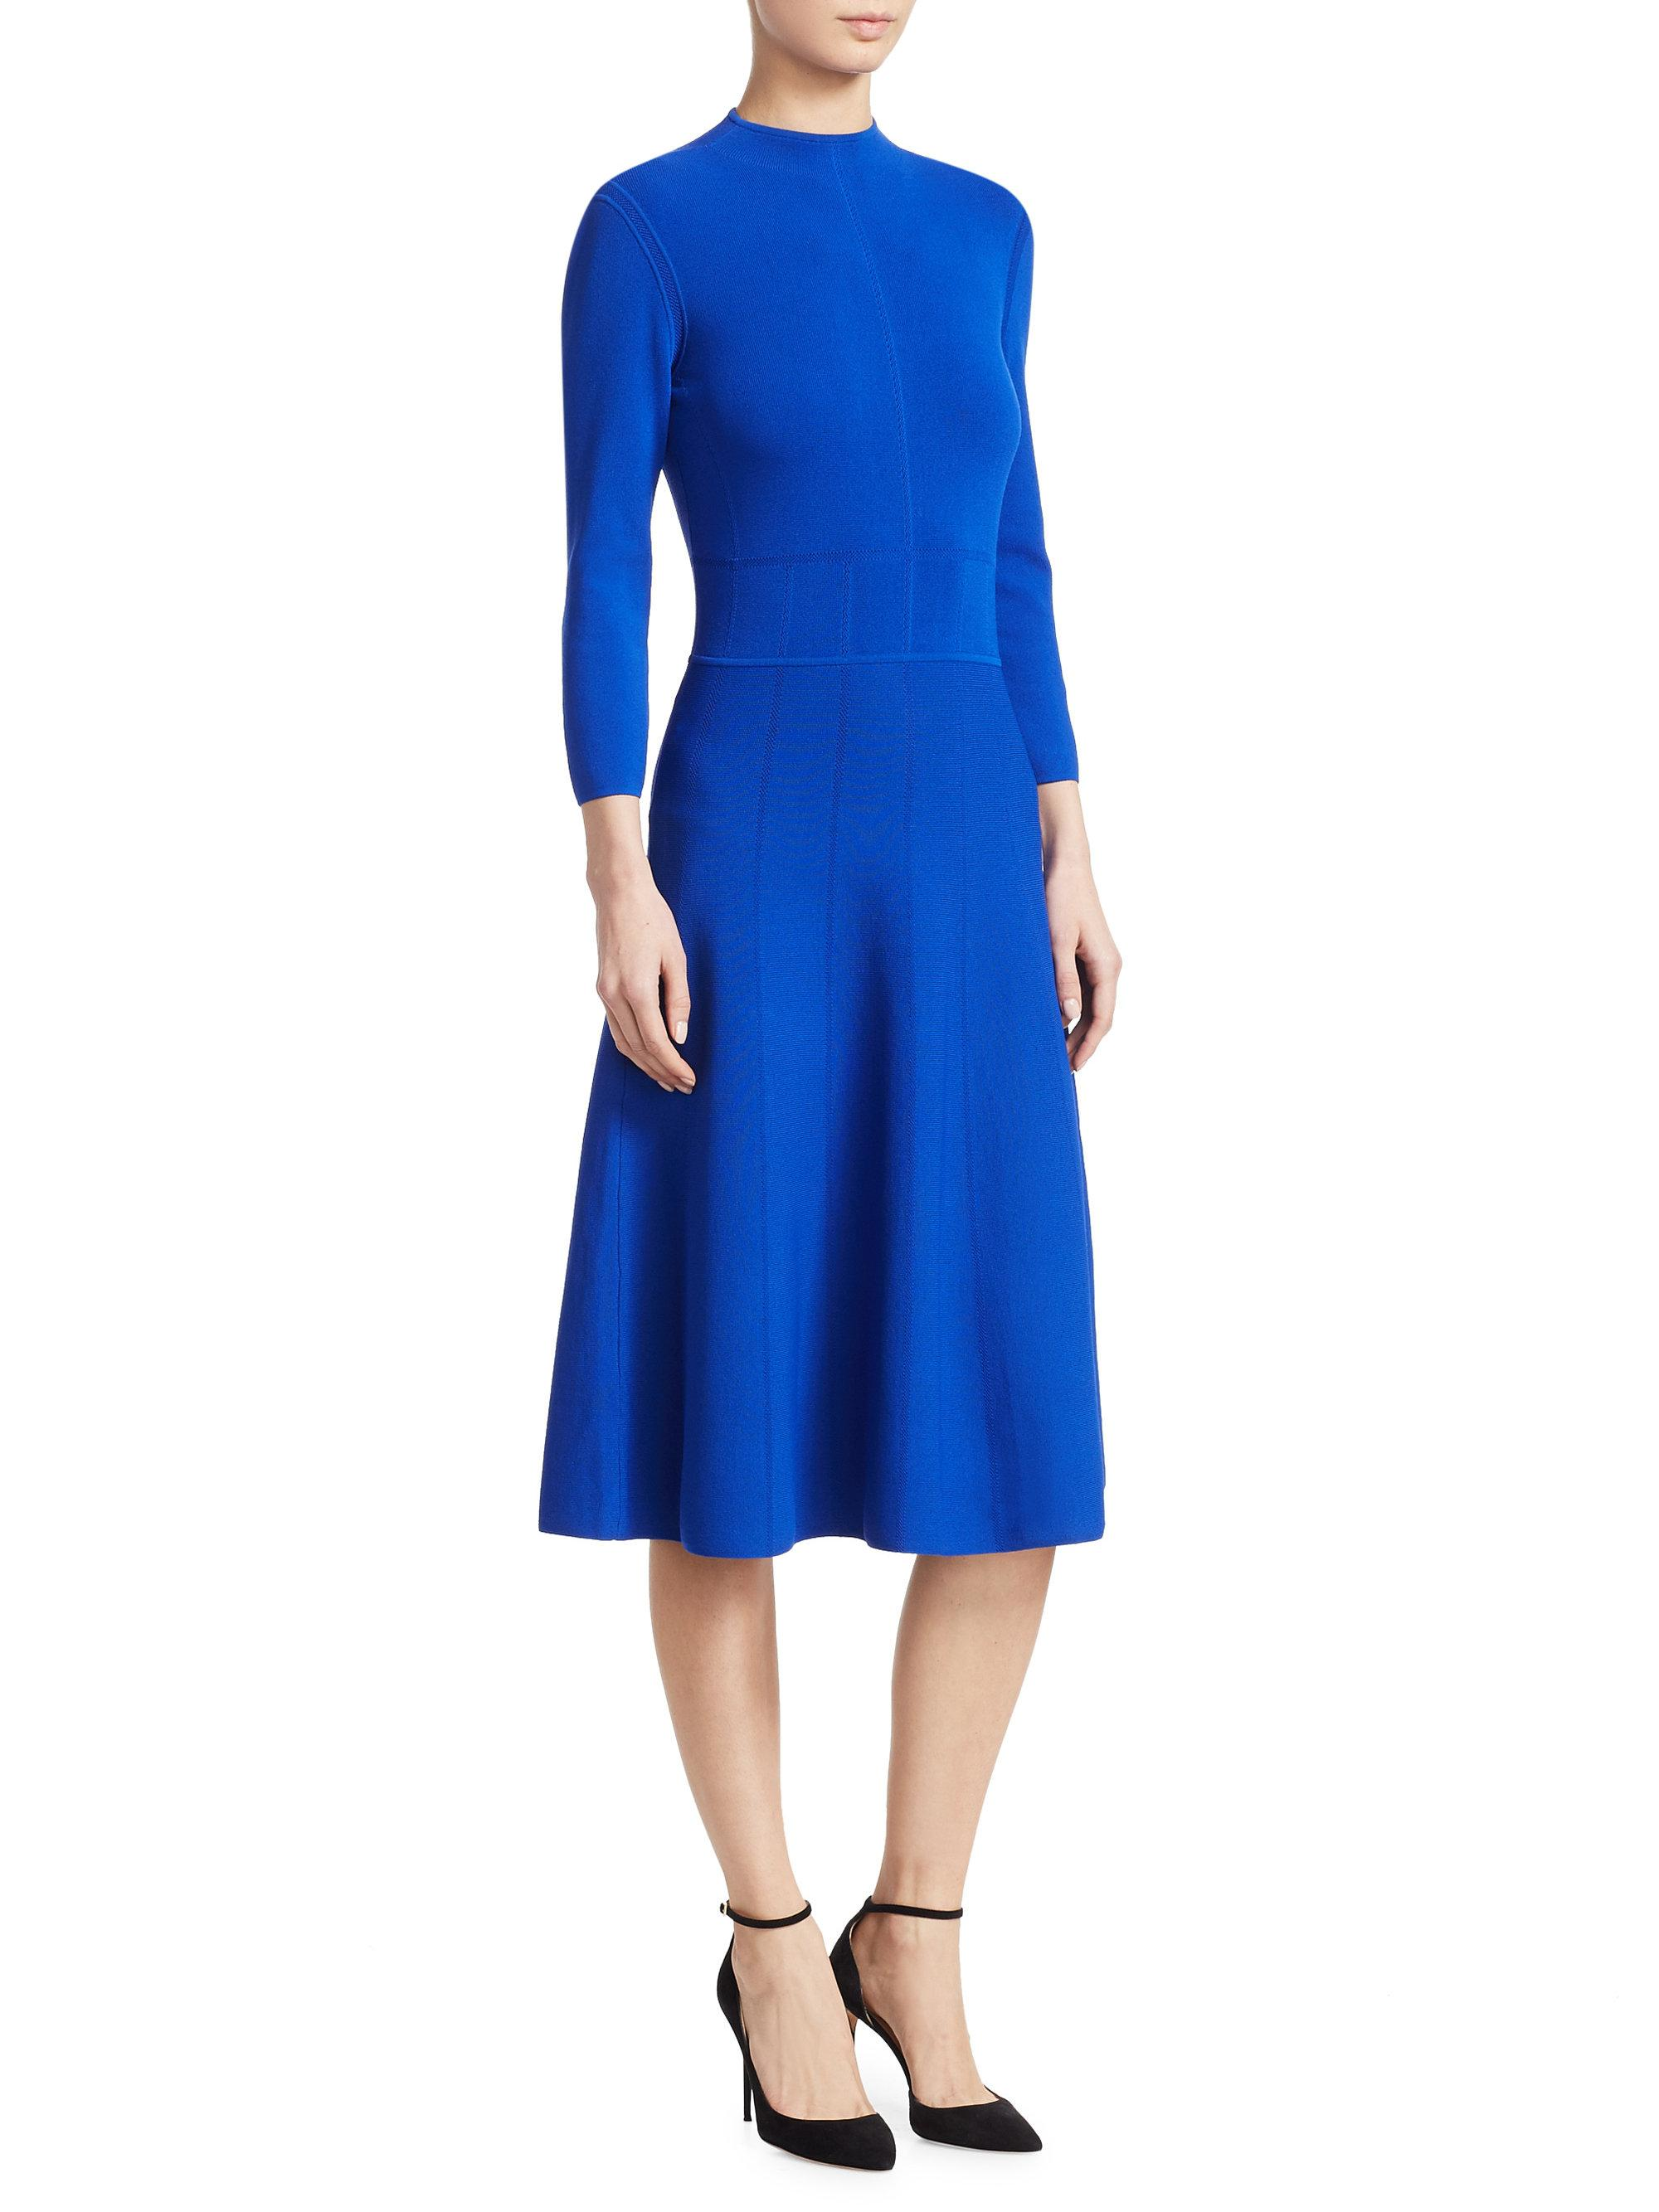 eternal-sv.tk: navy blue knit dress. This super comfy jersey knit dress has a rounded neckline and long iconic luxe Women's Fit and Flare Midi Dress with Pockets in Solid and Floral - Made in USA. by iconic luxe. $ - $ $ 17 $ 19 99 Prime. FREE Shipping on eligible orders.